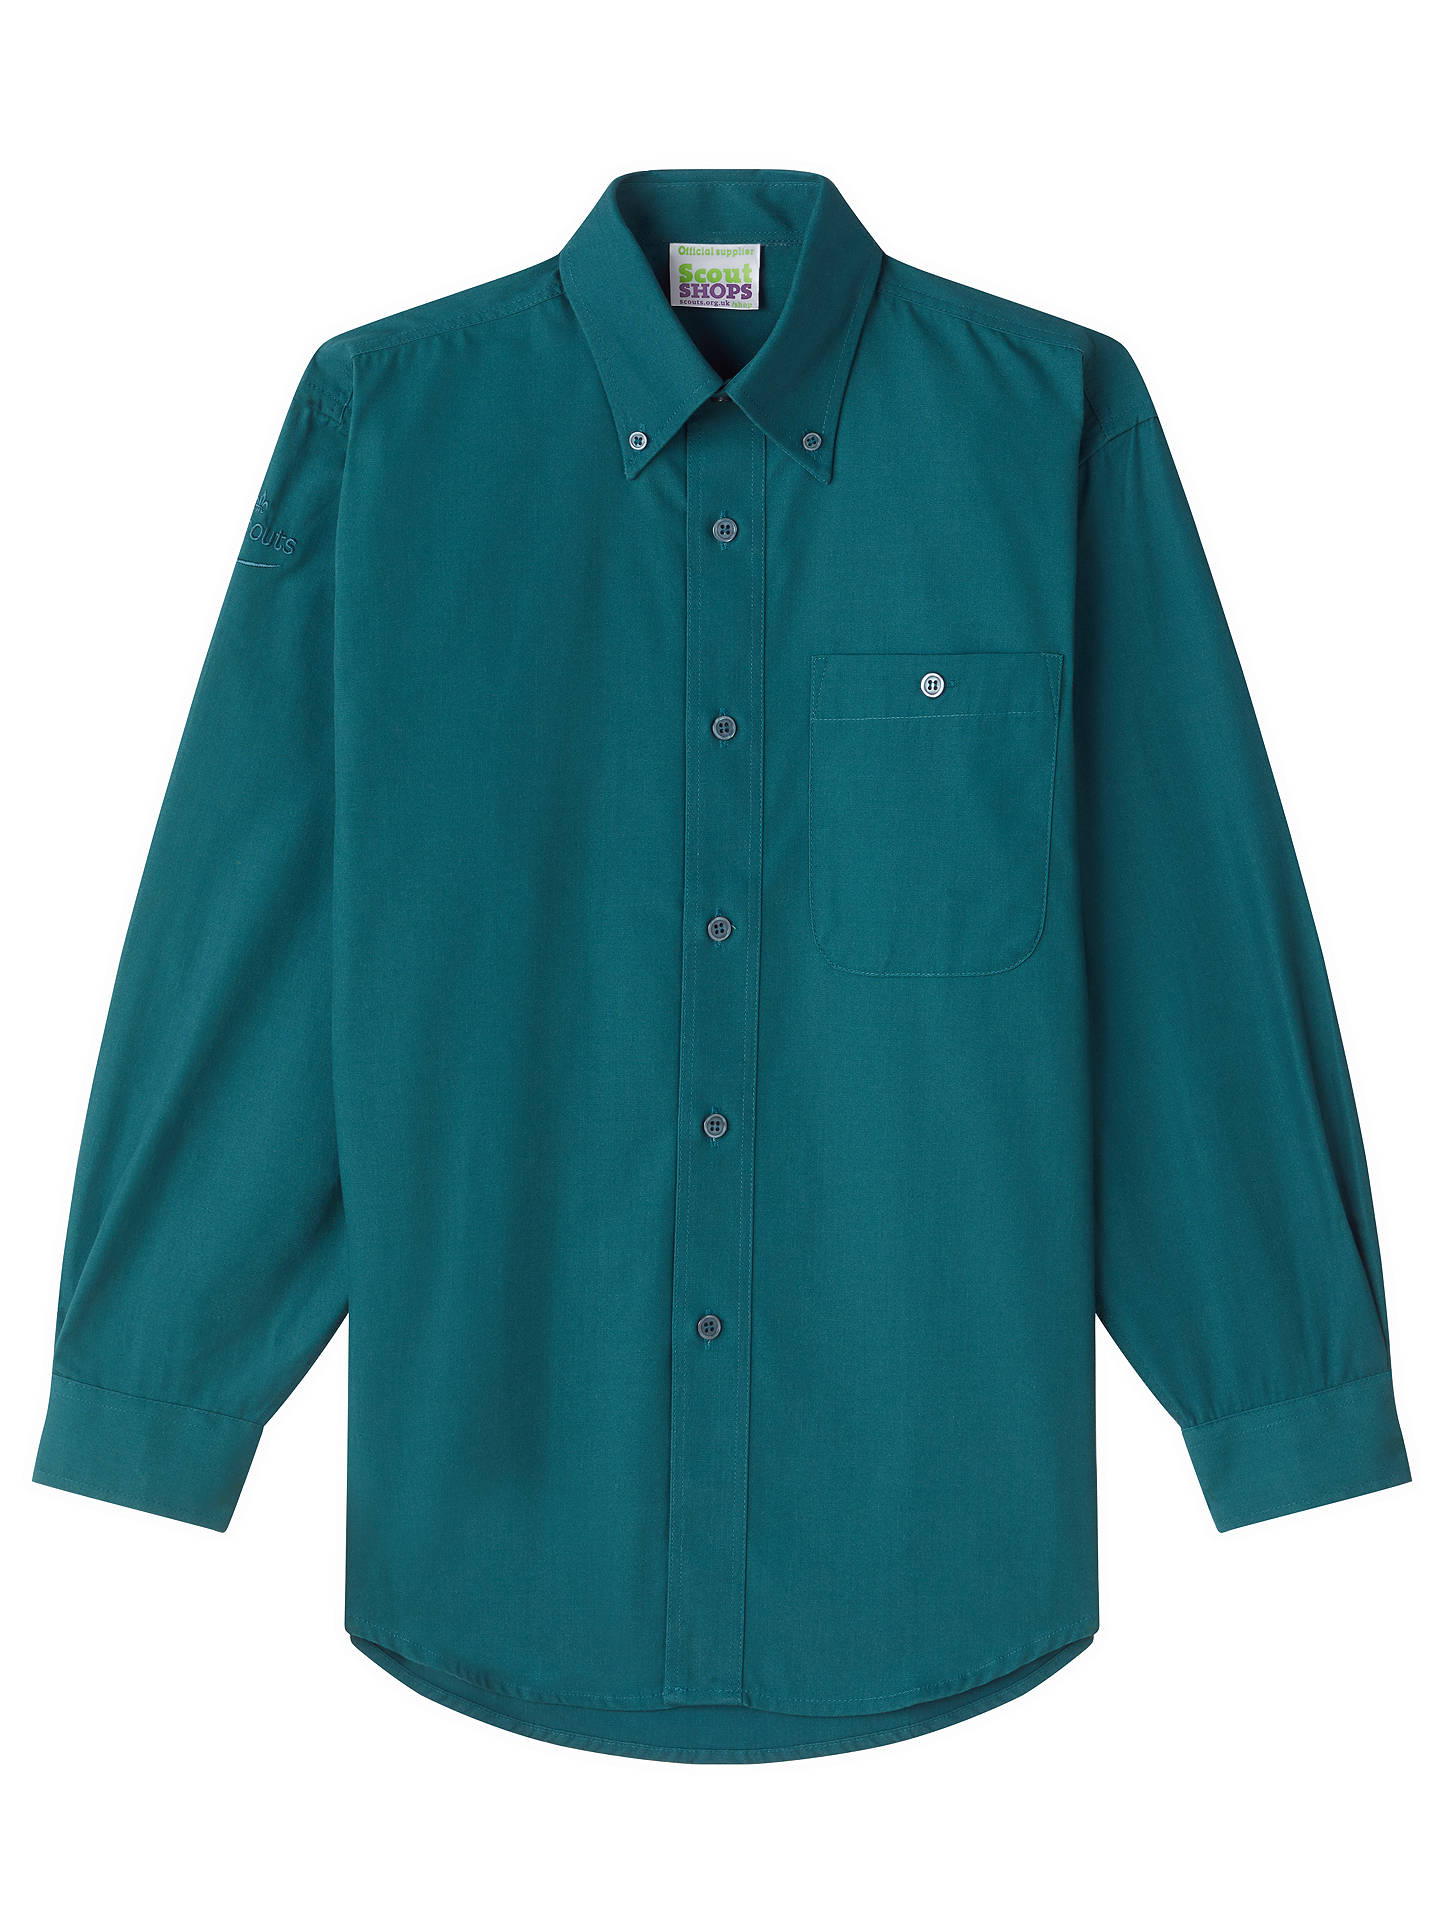 Buy Scouts Long Sleeve Shirt, Green, XXS Online at johnlewis.com